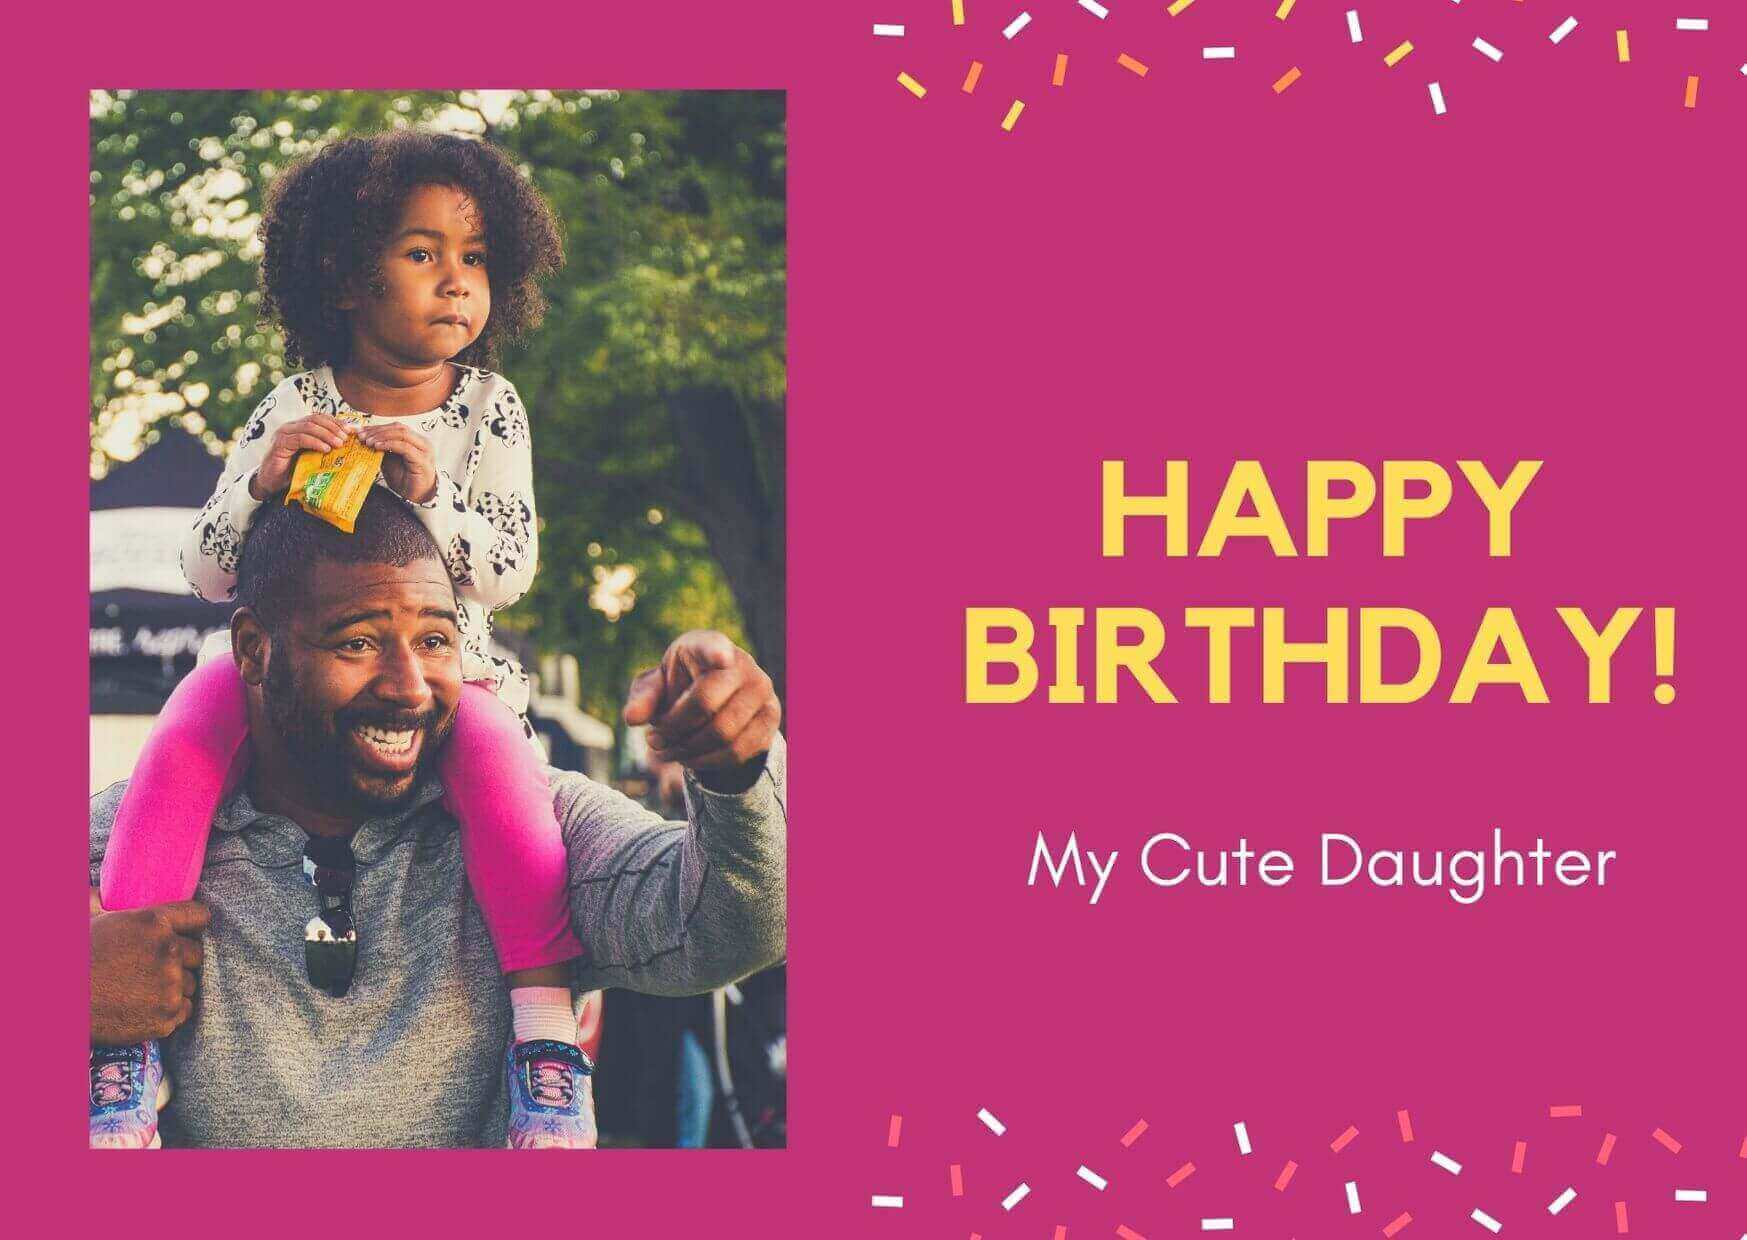 Birthday Wishes for Daughter Image